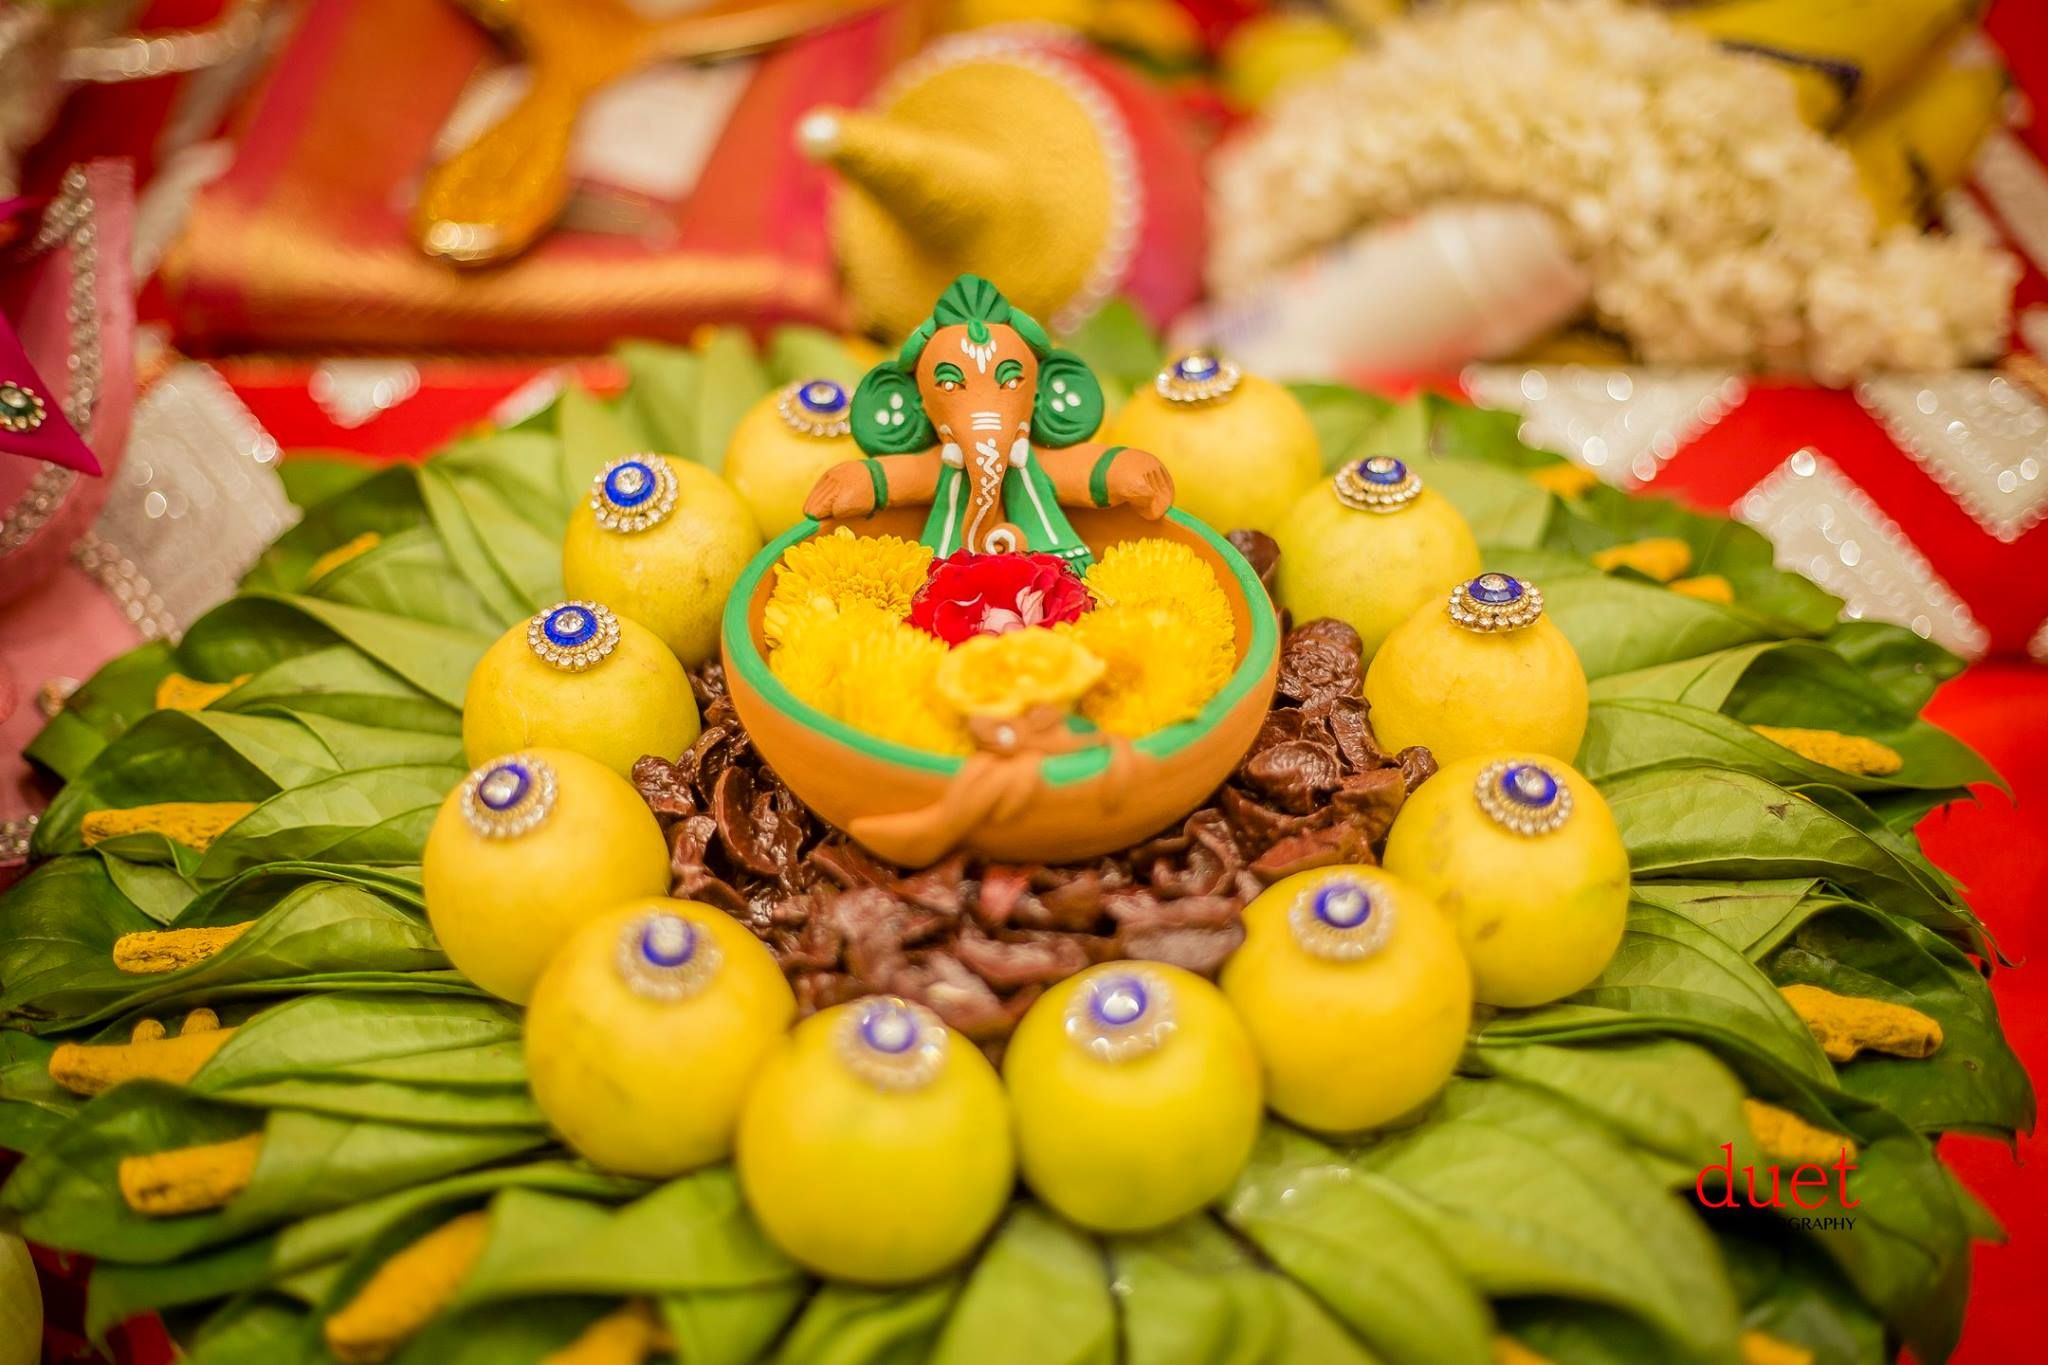 Ganesa In The Middle Of Decorated Oranges Plate Decoration Tray